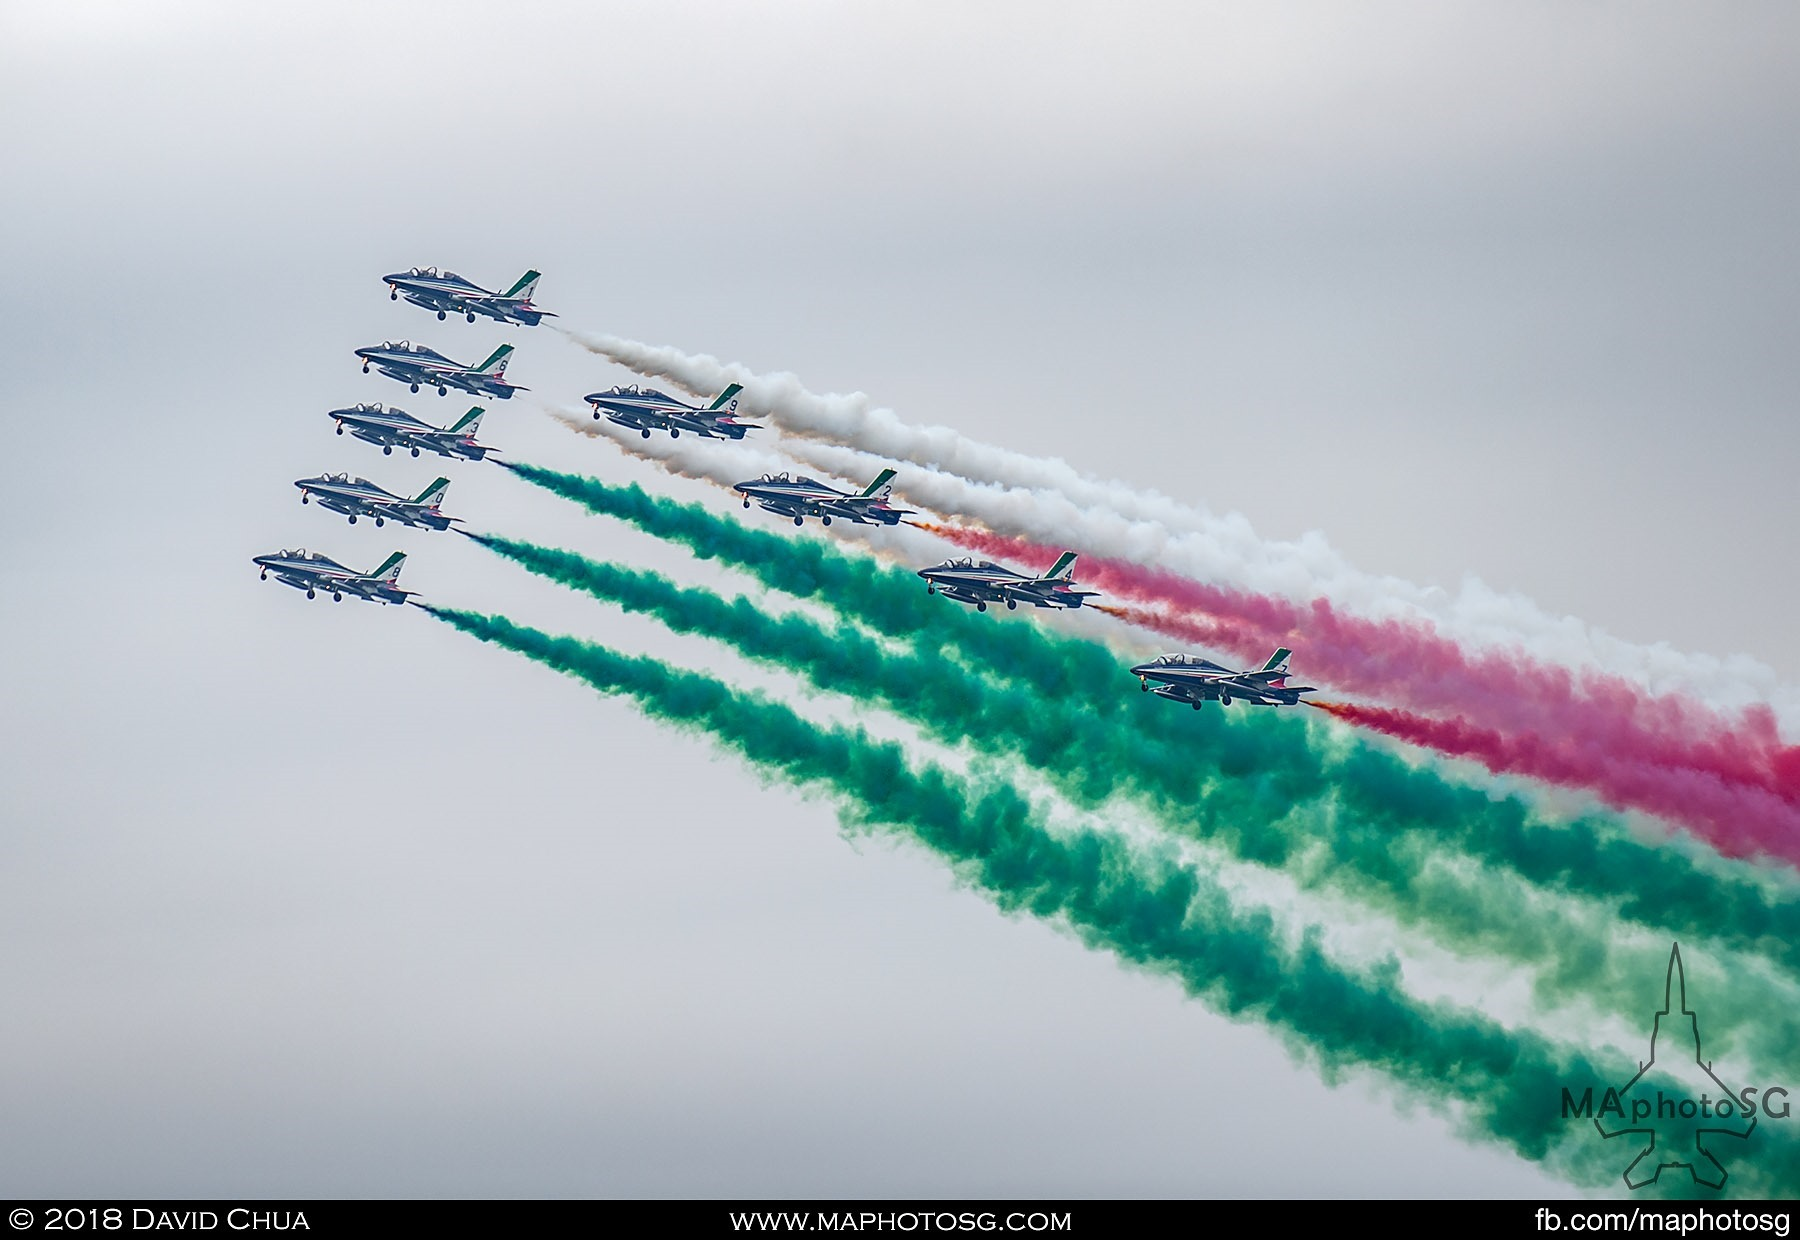 57. Frecce Tricolori flying in formation and painting the sky with the green white and red of the Italian Flag